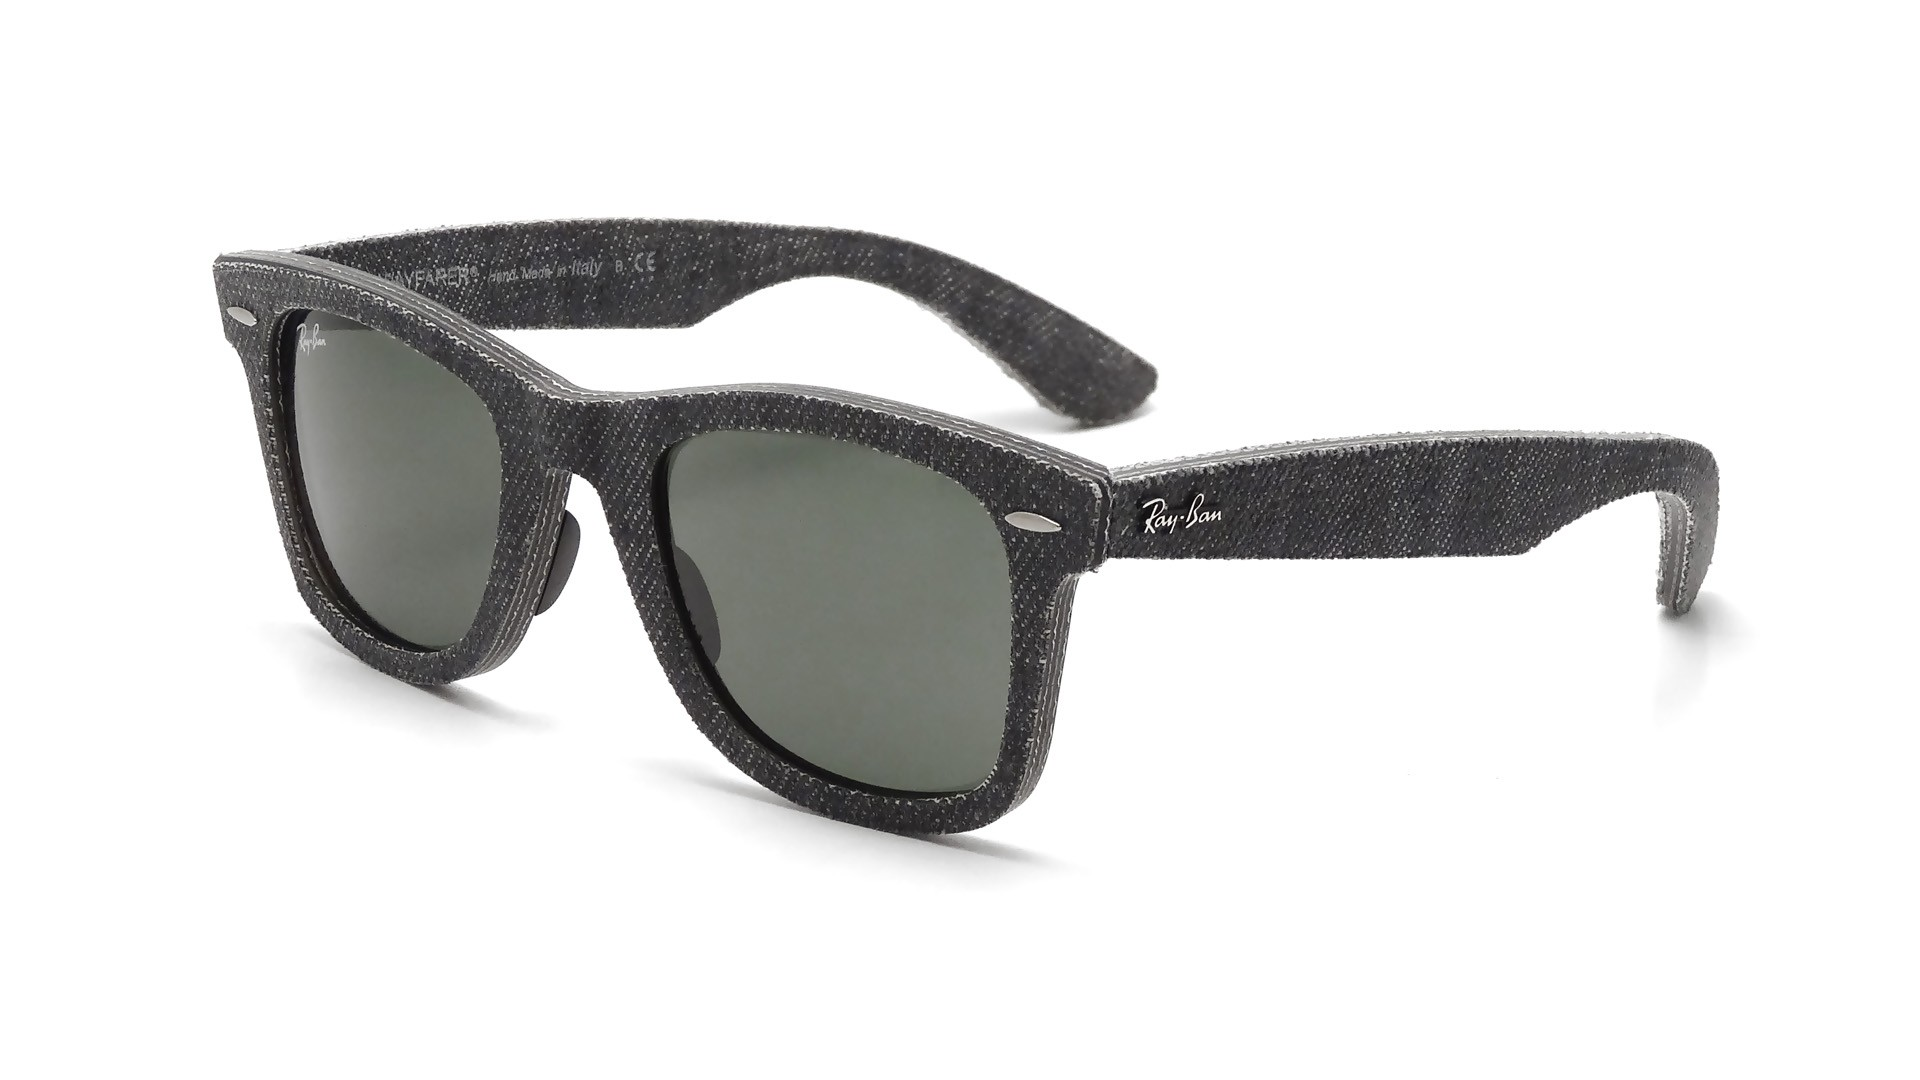 1dee5281f1 Ray-Ban -- RB2140 Wayfarer glasses only  177.50. Add lenses for  14.95